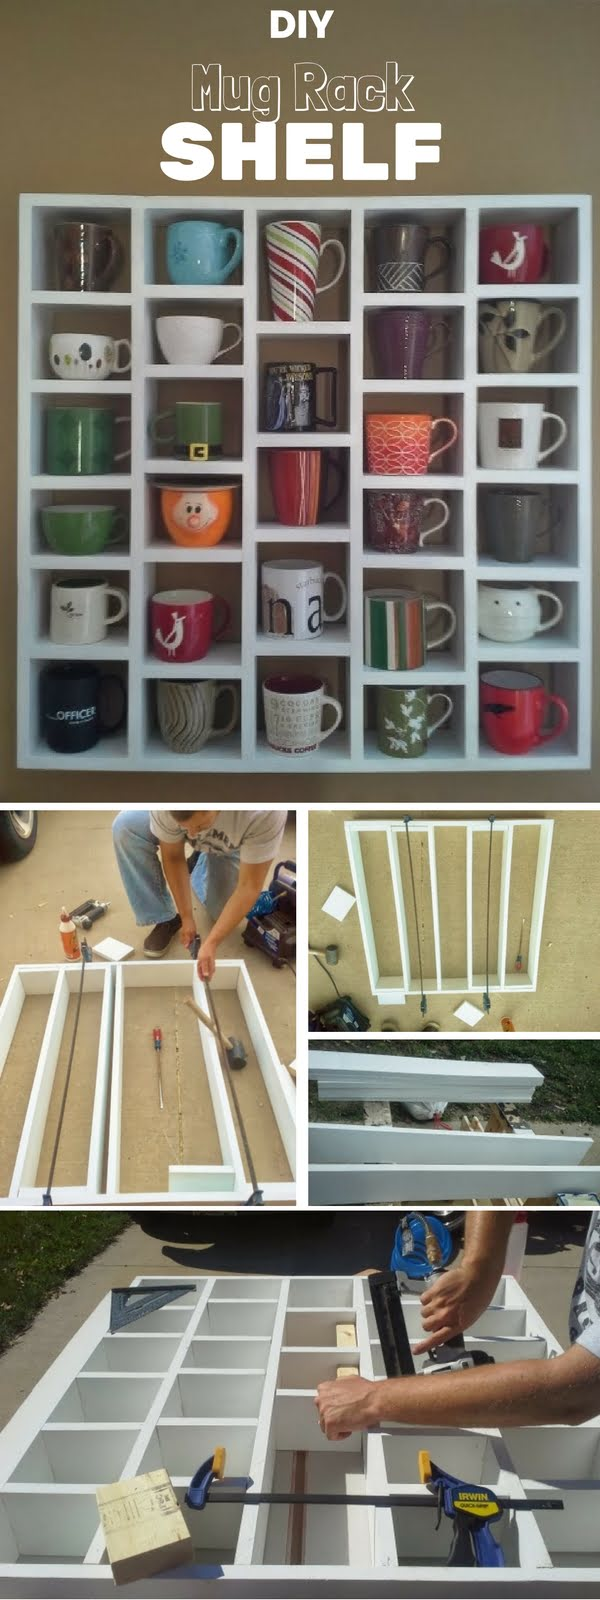 Check out the tutorial:  Mug Rack Shelf